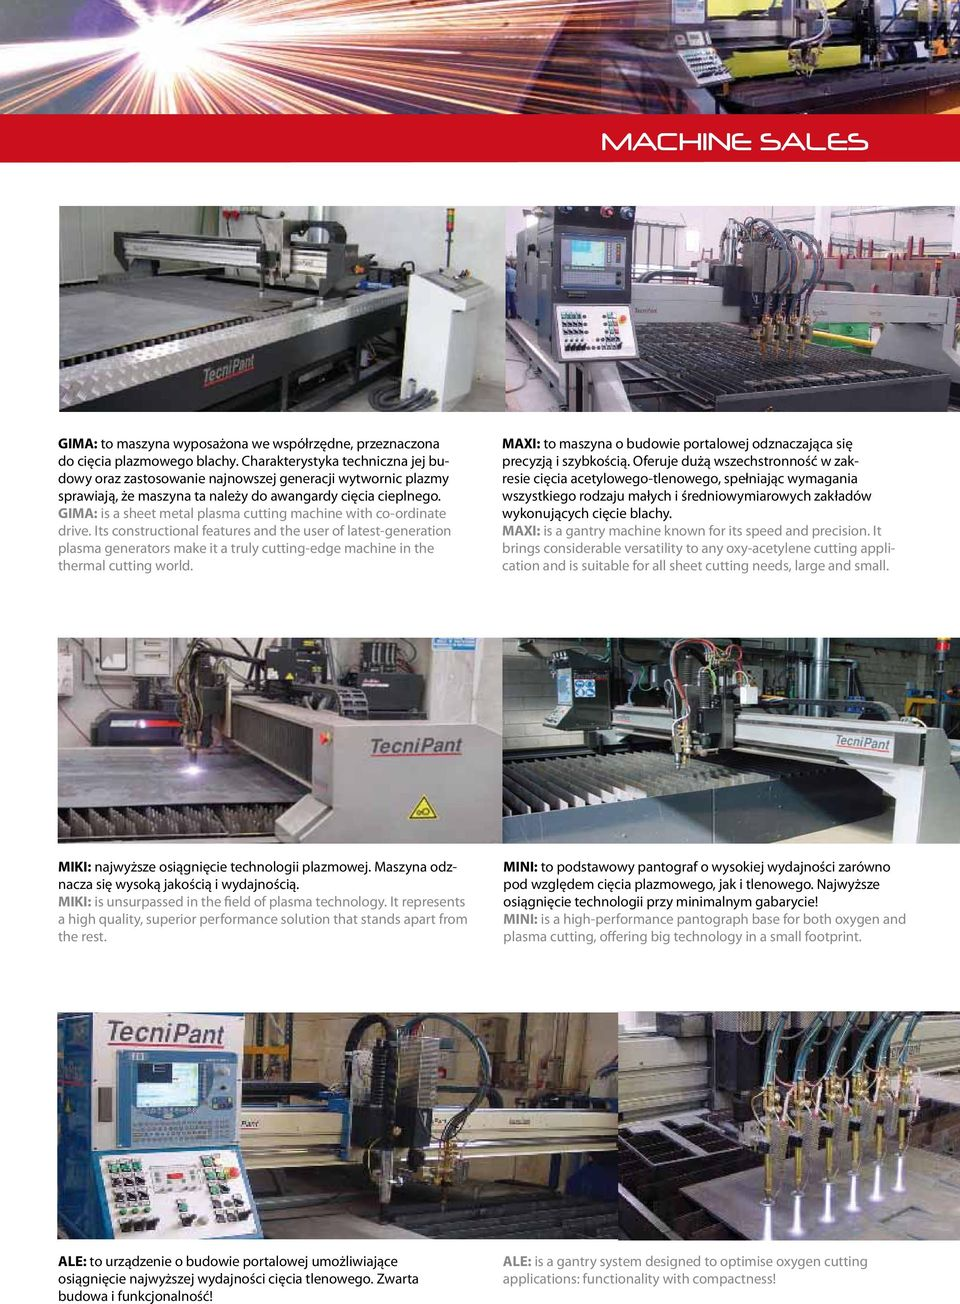 GIMA: is a sheet metal plasma cutting machine with co-ordinate drive.